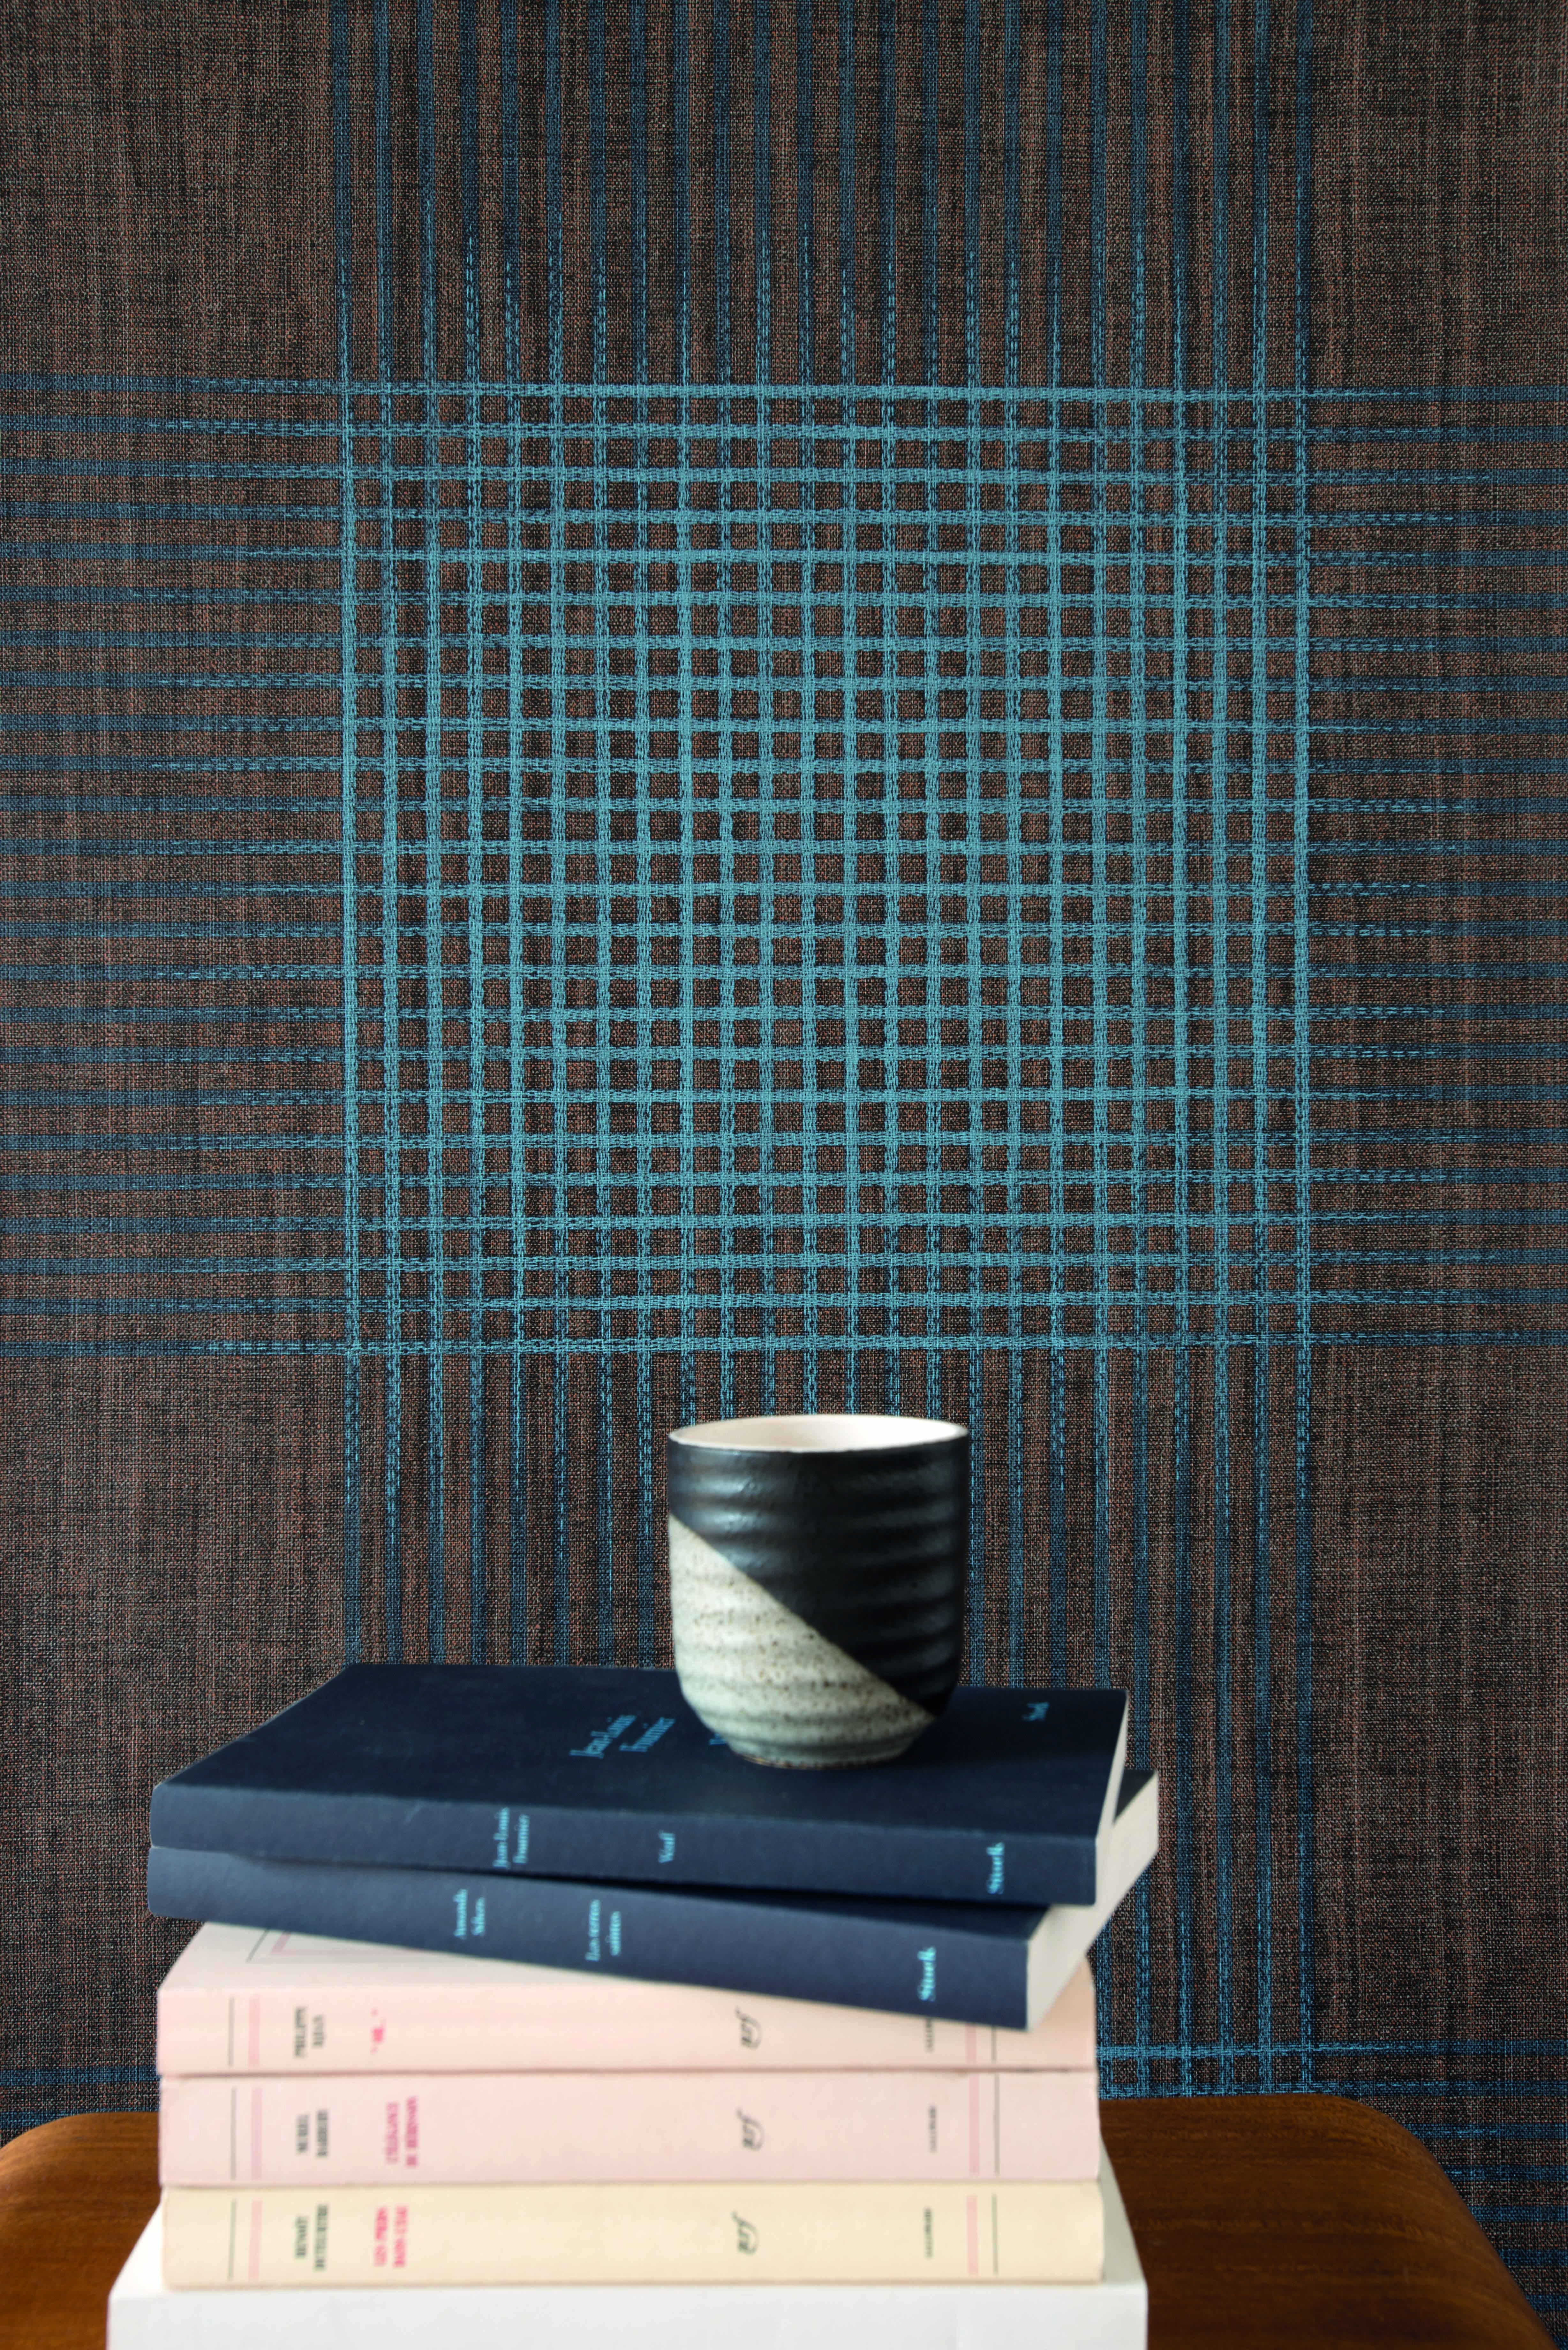 The Playful Patterns And Textiles Weavings Joined Adjacently Newlook Shares A Common Color Scheme Creating Whole New Look For Your Living Room